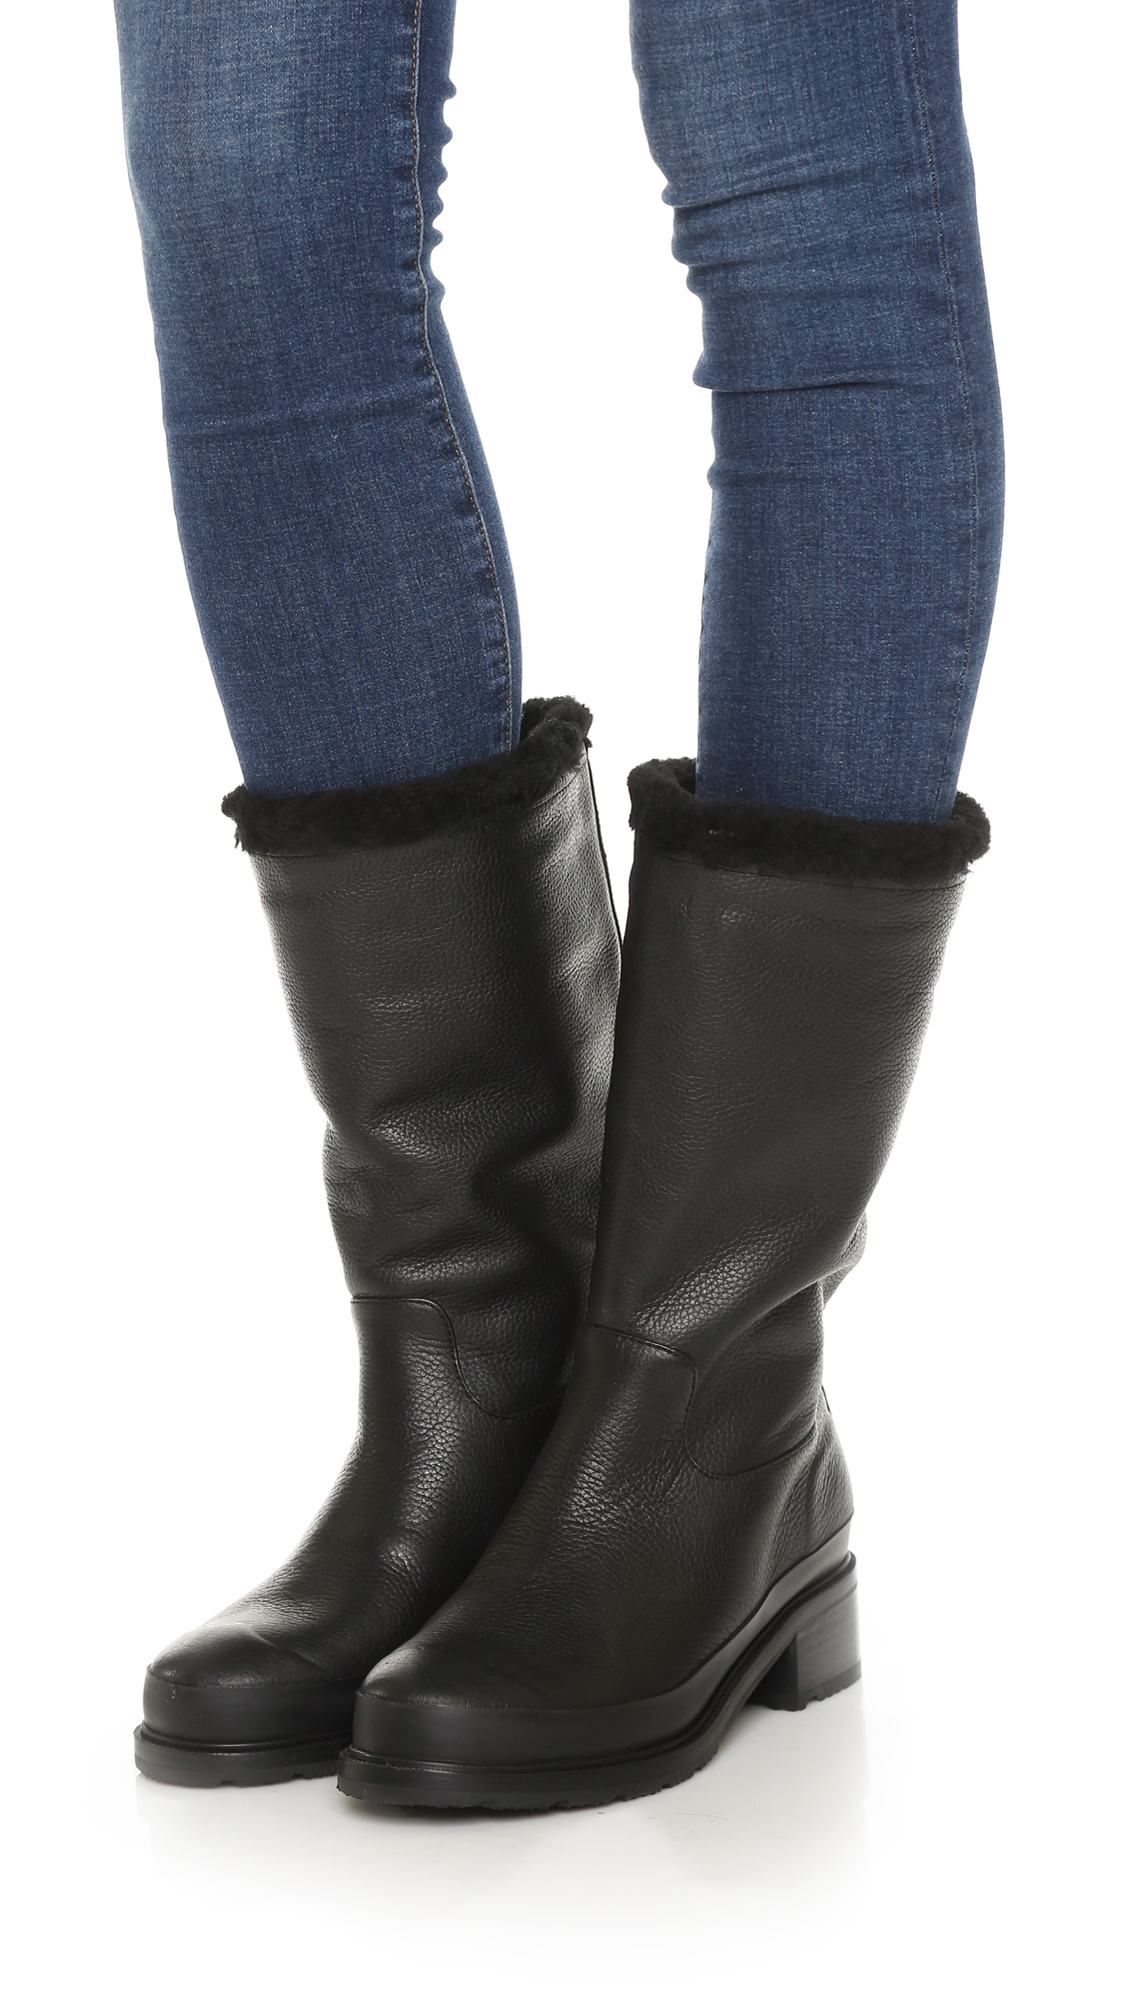 Hunter Original Shearling Lined Leather Boots in Black | Lyst